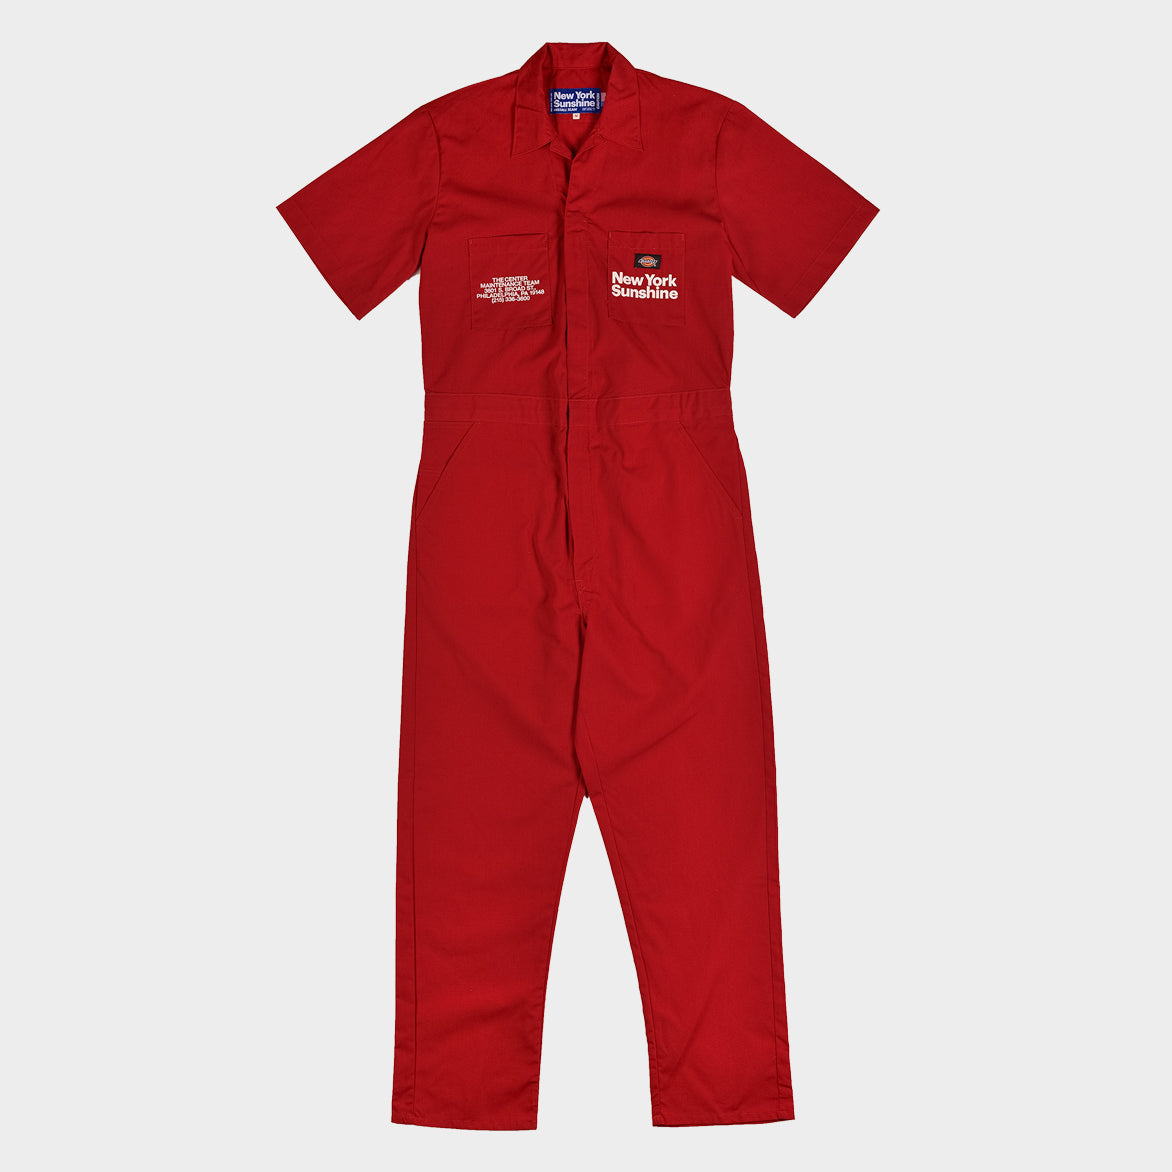 NEW YORK SUNSHINE X 76ERS DICKIES INSTALL TEAM S/S COVERALLS - RED